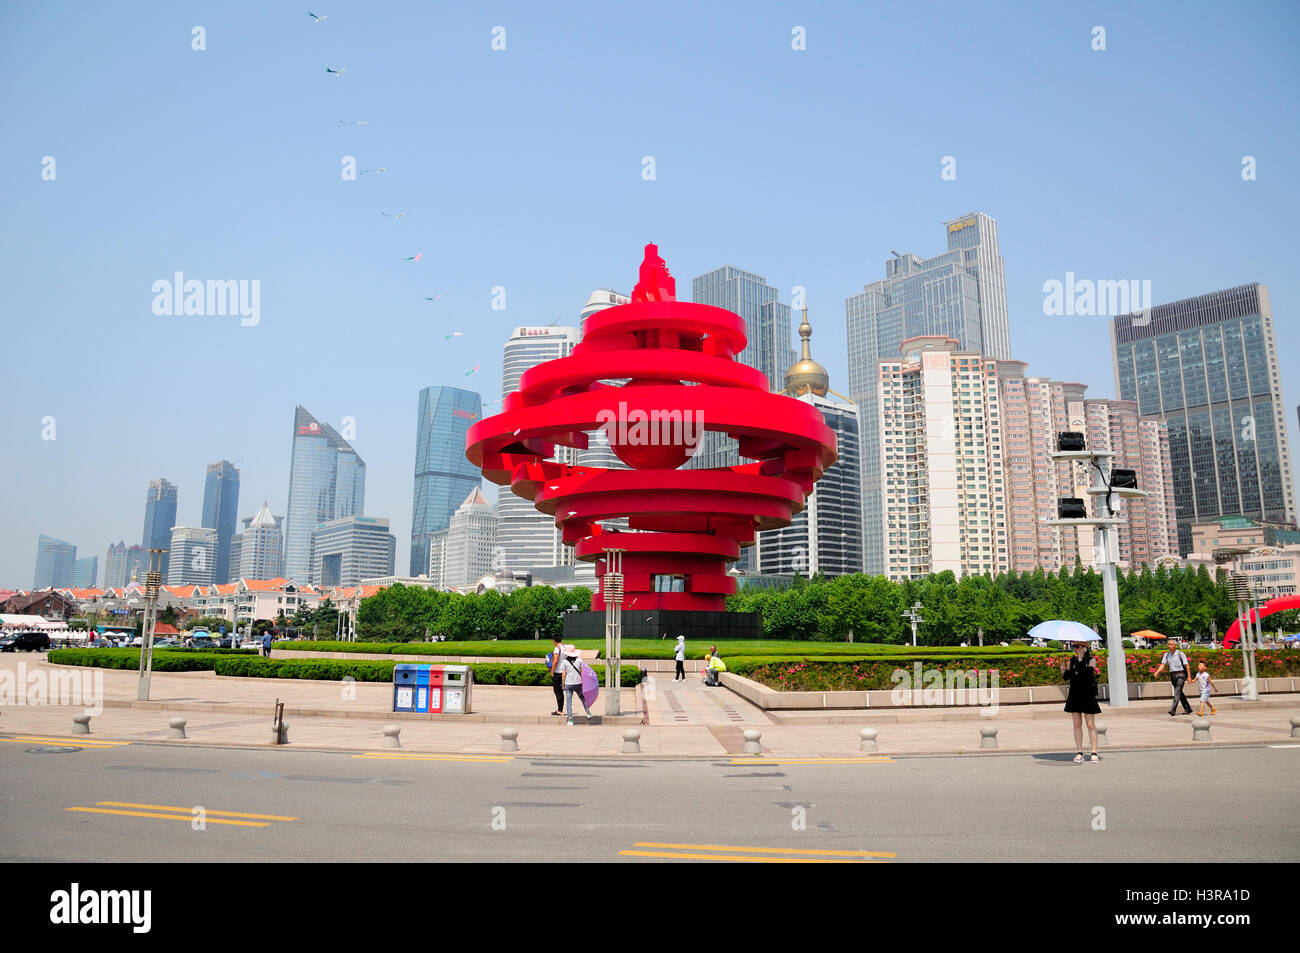 June 24, 2016.  Qingdao, China.  Chinese tourists around the landmark May fourth sculpture in the city of Qingdao - Stock Image